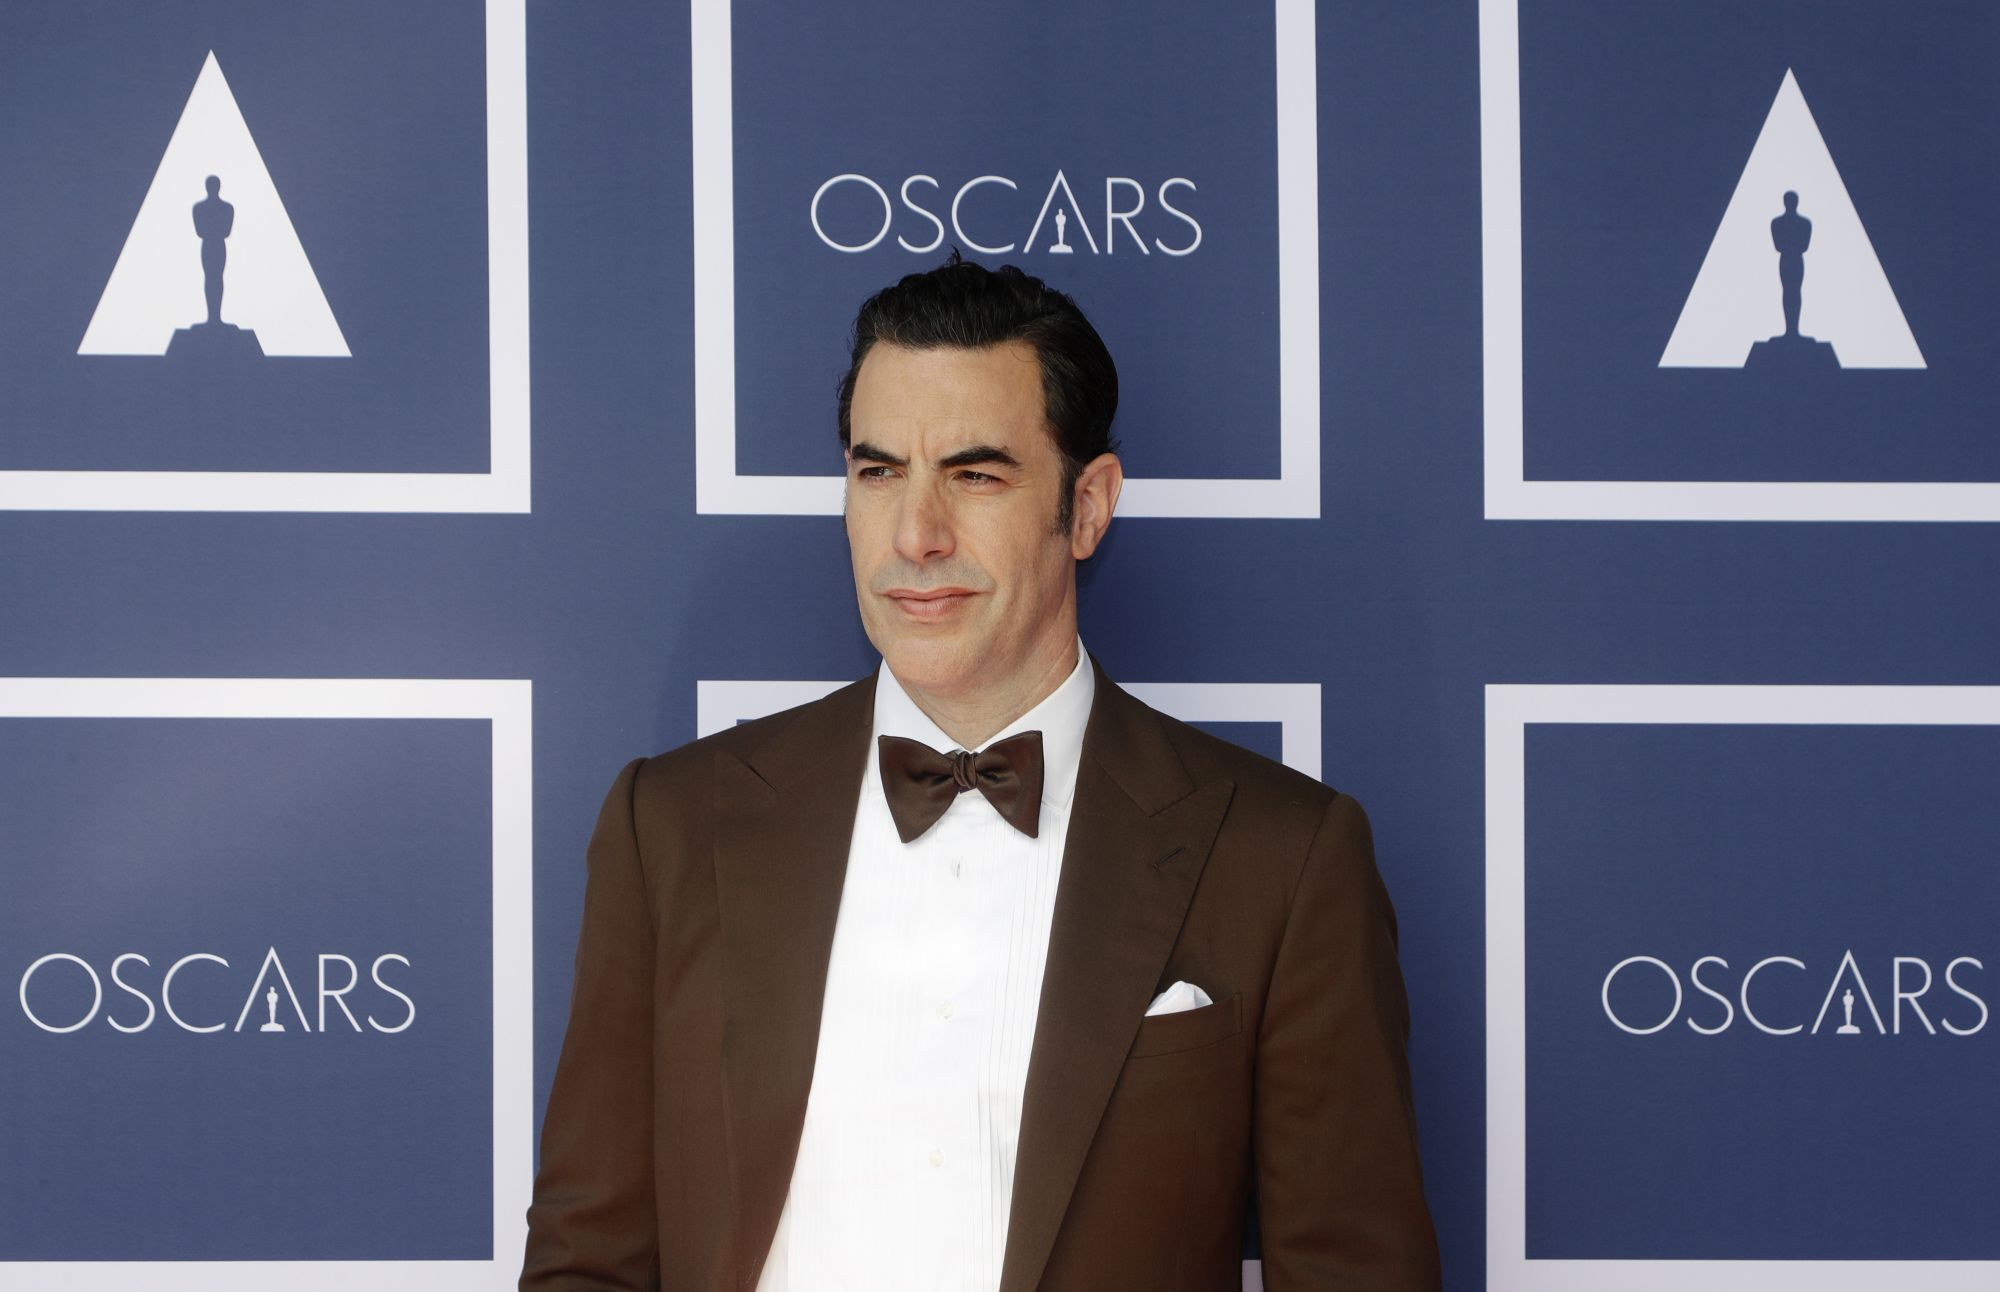 SYDNEY, AUSTRALIA – APRIL 26: Sacha Baron Cohen attends a screening of the Oscars on April 26, 2021 in Sydney, Australia. (Photo by Rick Rycroft-Pool/Getty Images)